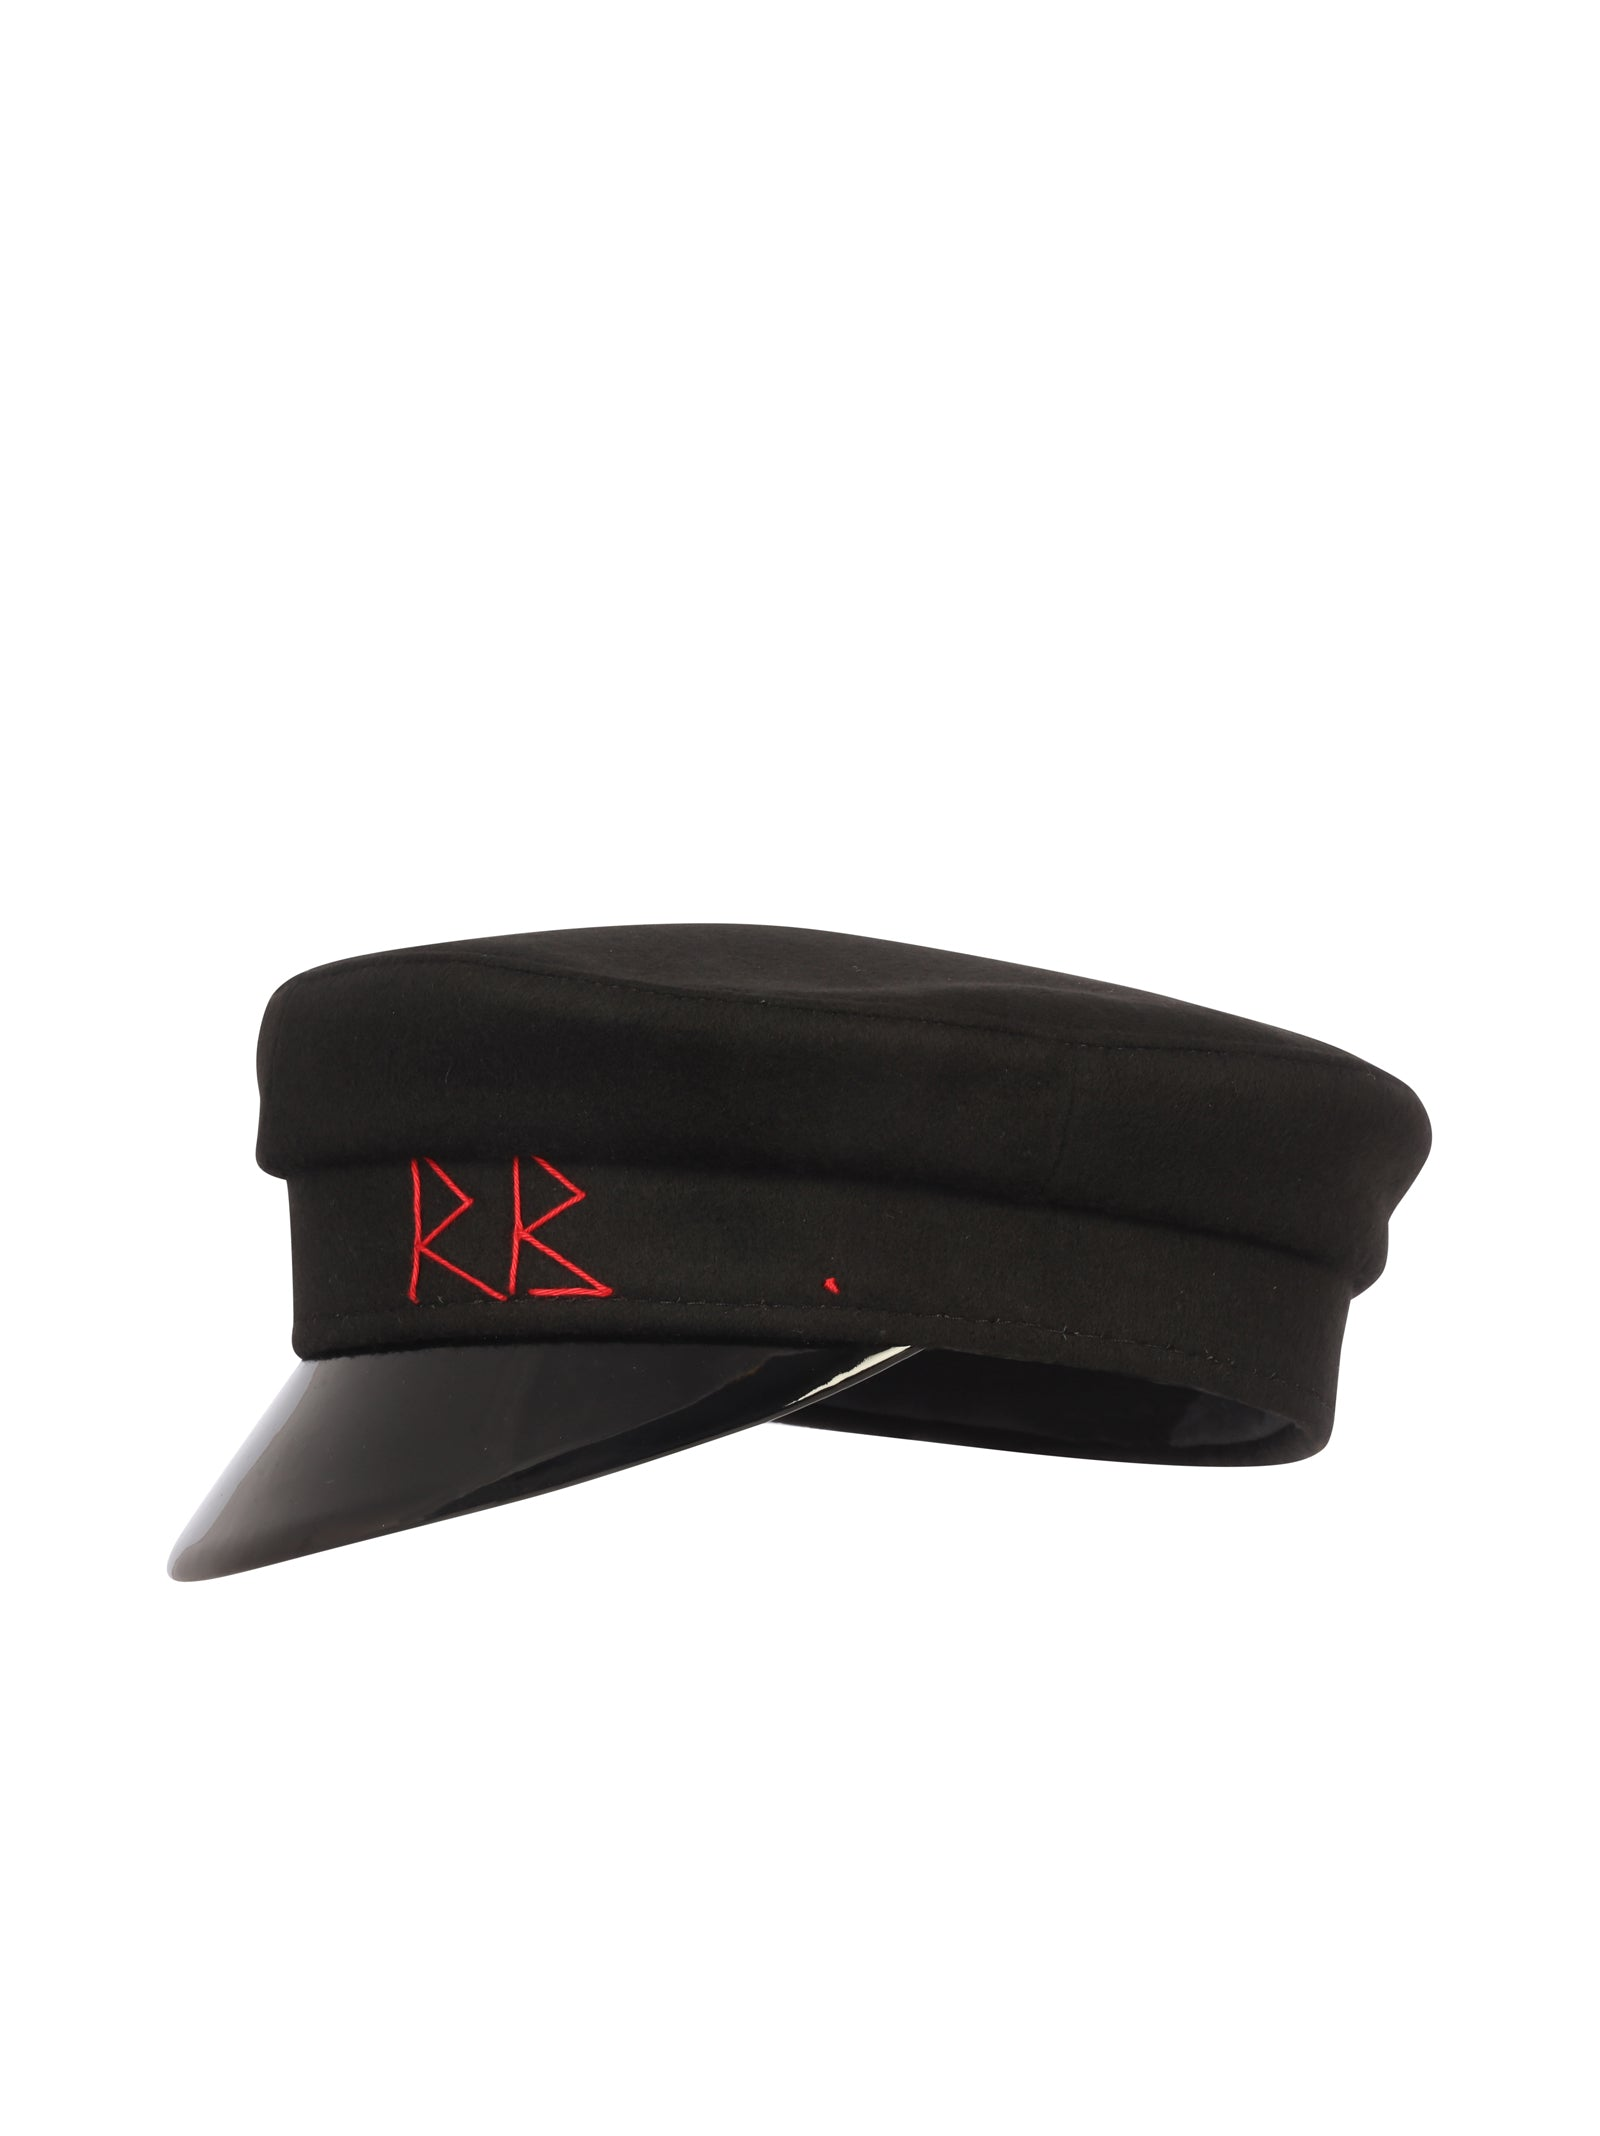 logo stitch baker boy hat